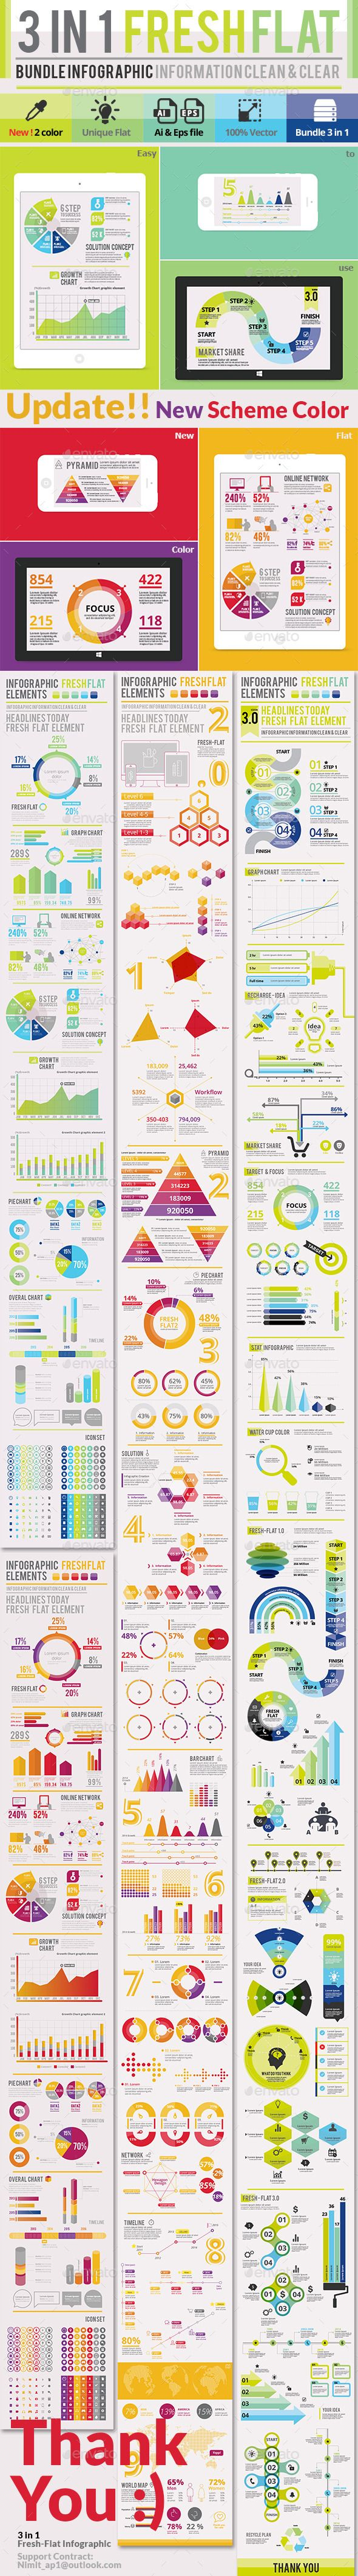 3 in 1 Fresh-Flat Infographic EPS, AI Template #design Download: http://graphicriver.net/item/3-in-1-freshflat/9016582?ref=ksioks